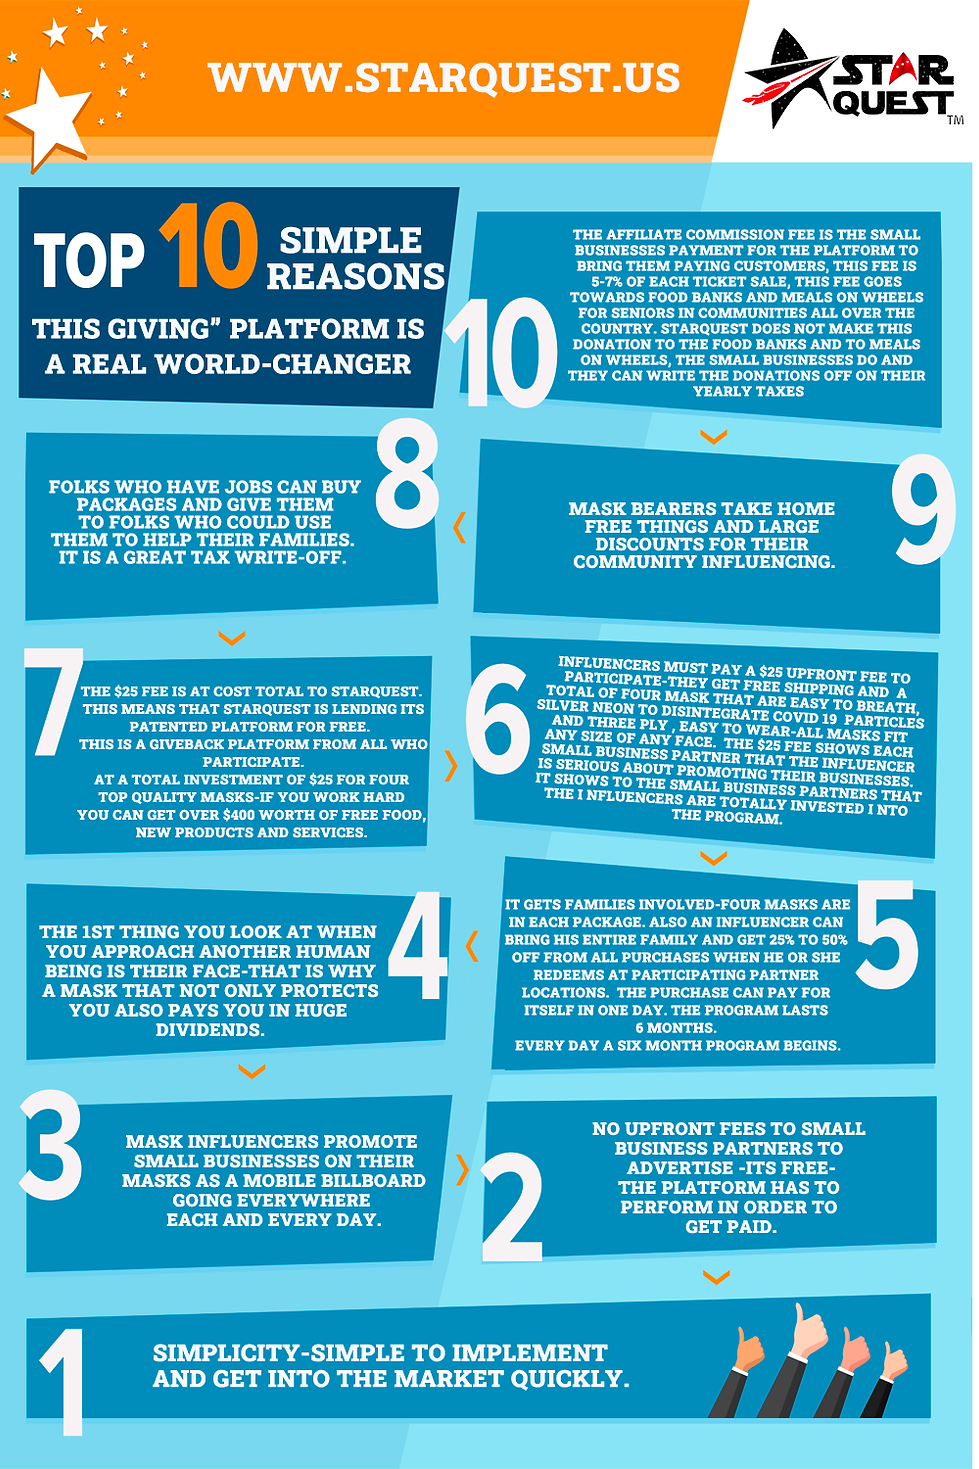 Starquest top 10 reasons.png